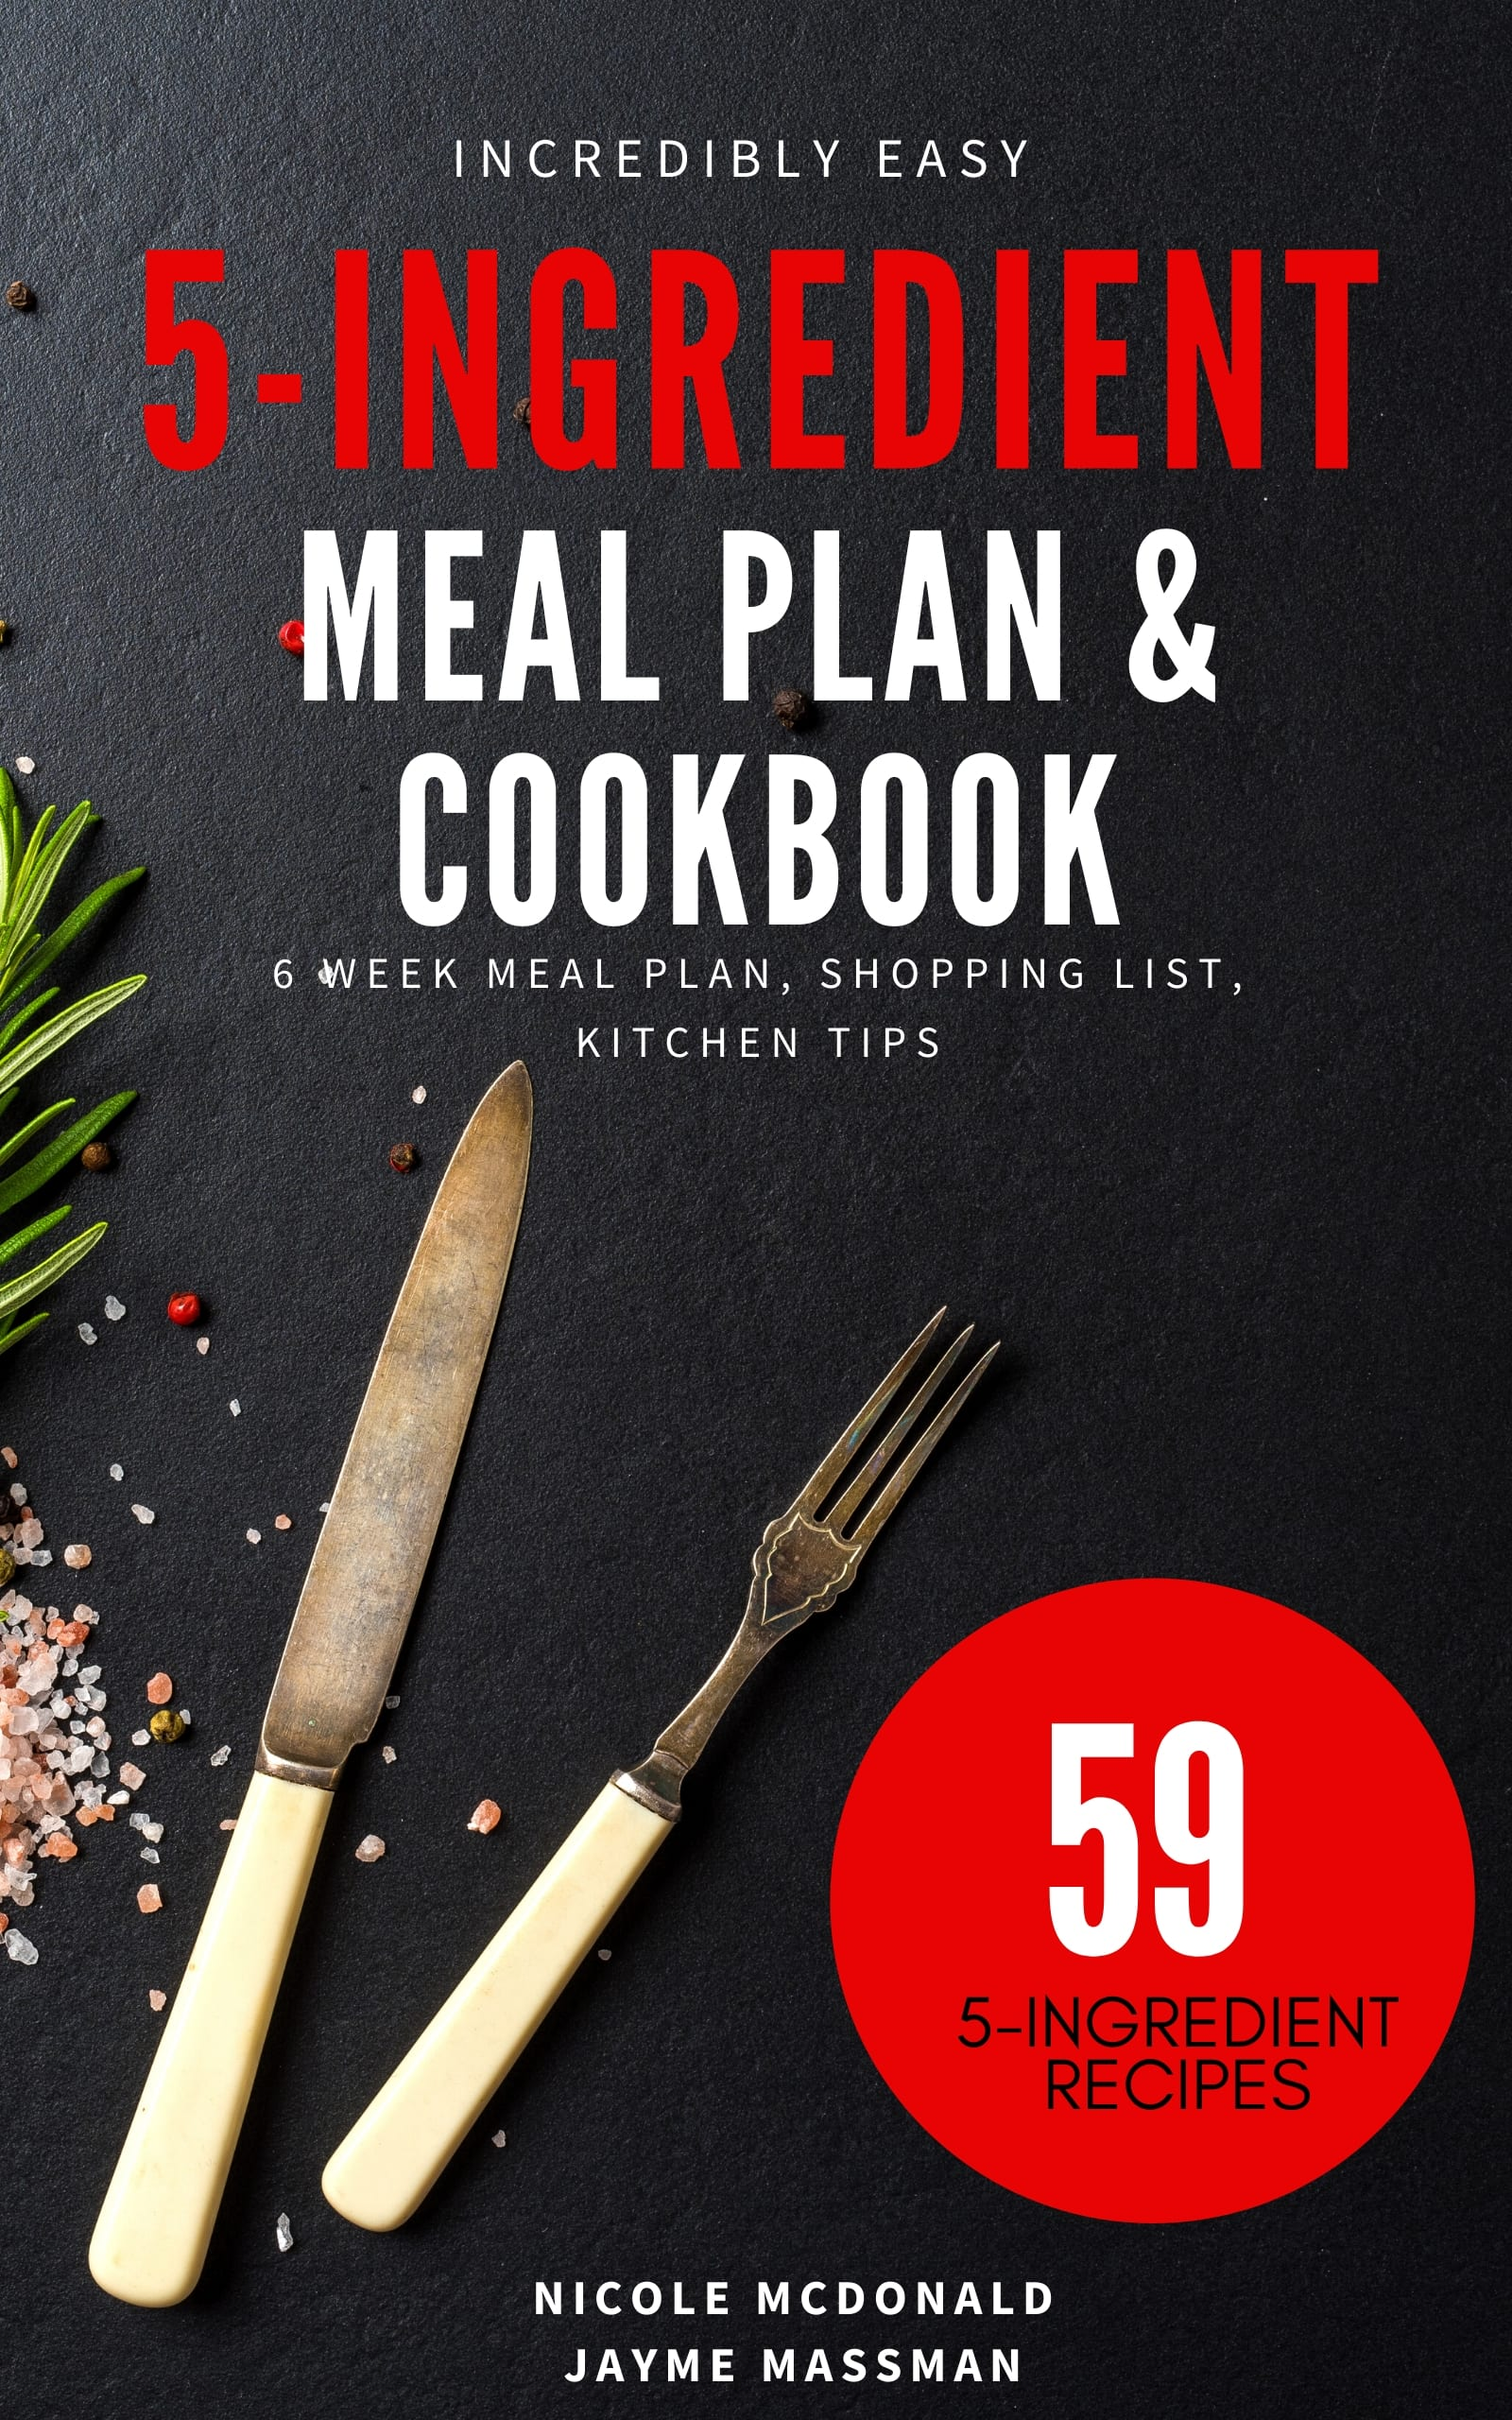 5 ingredient meal plan and cookbook cover